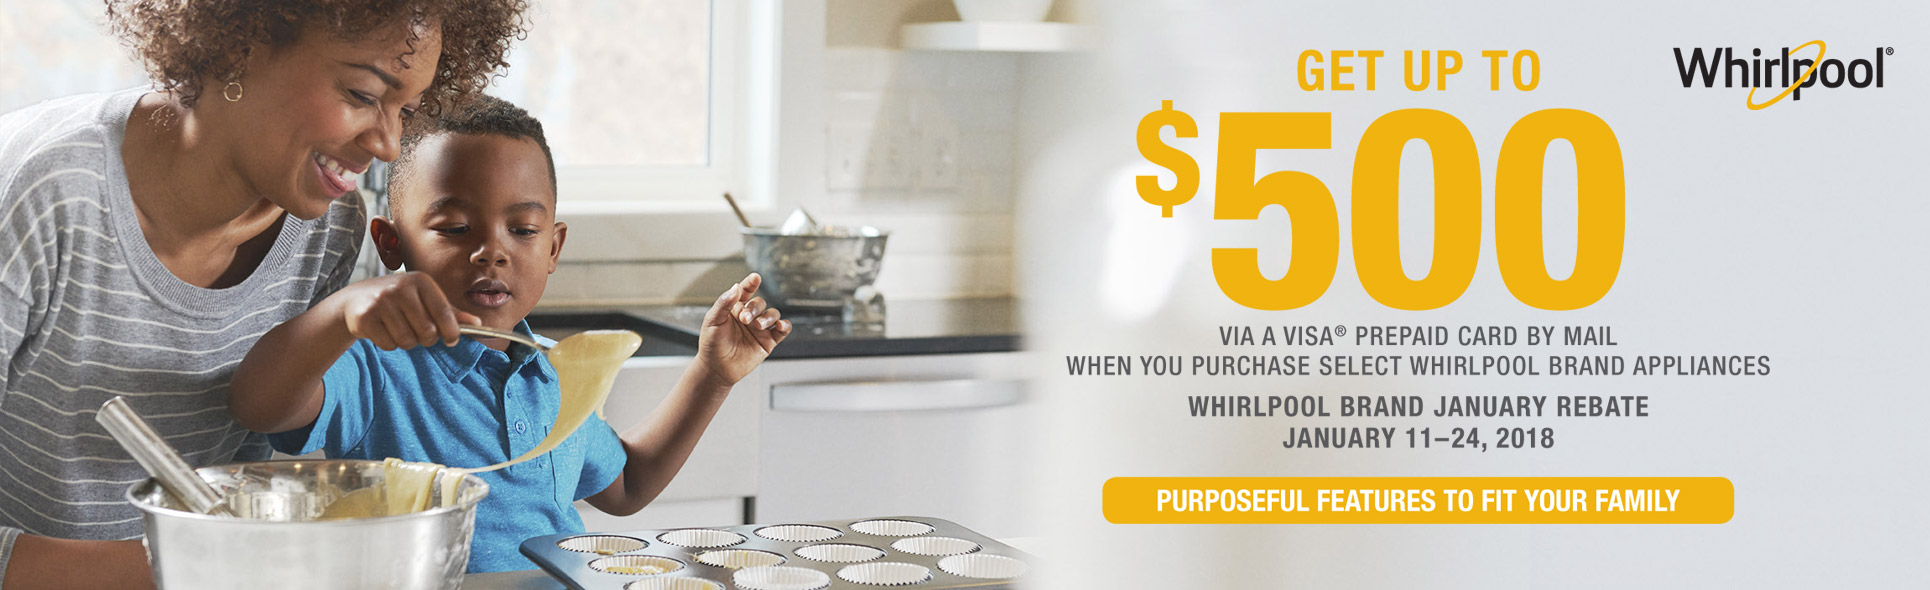 Whirlpool Package Savings up to $500